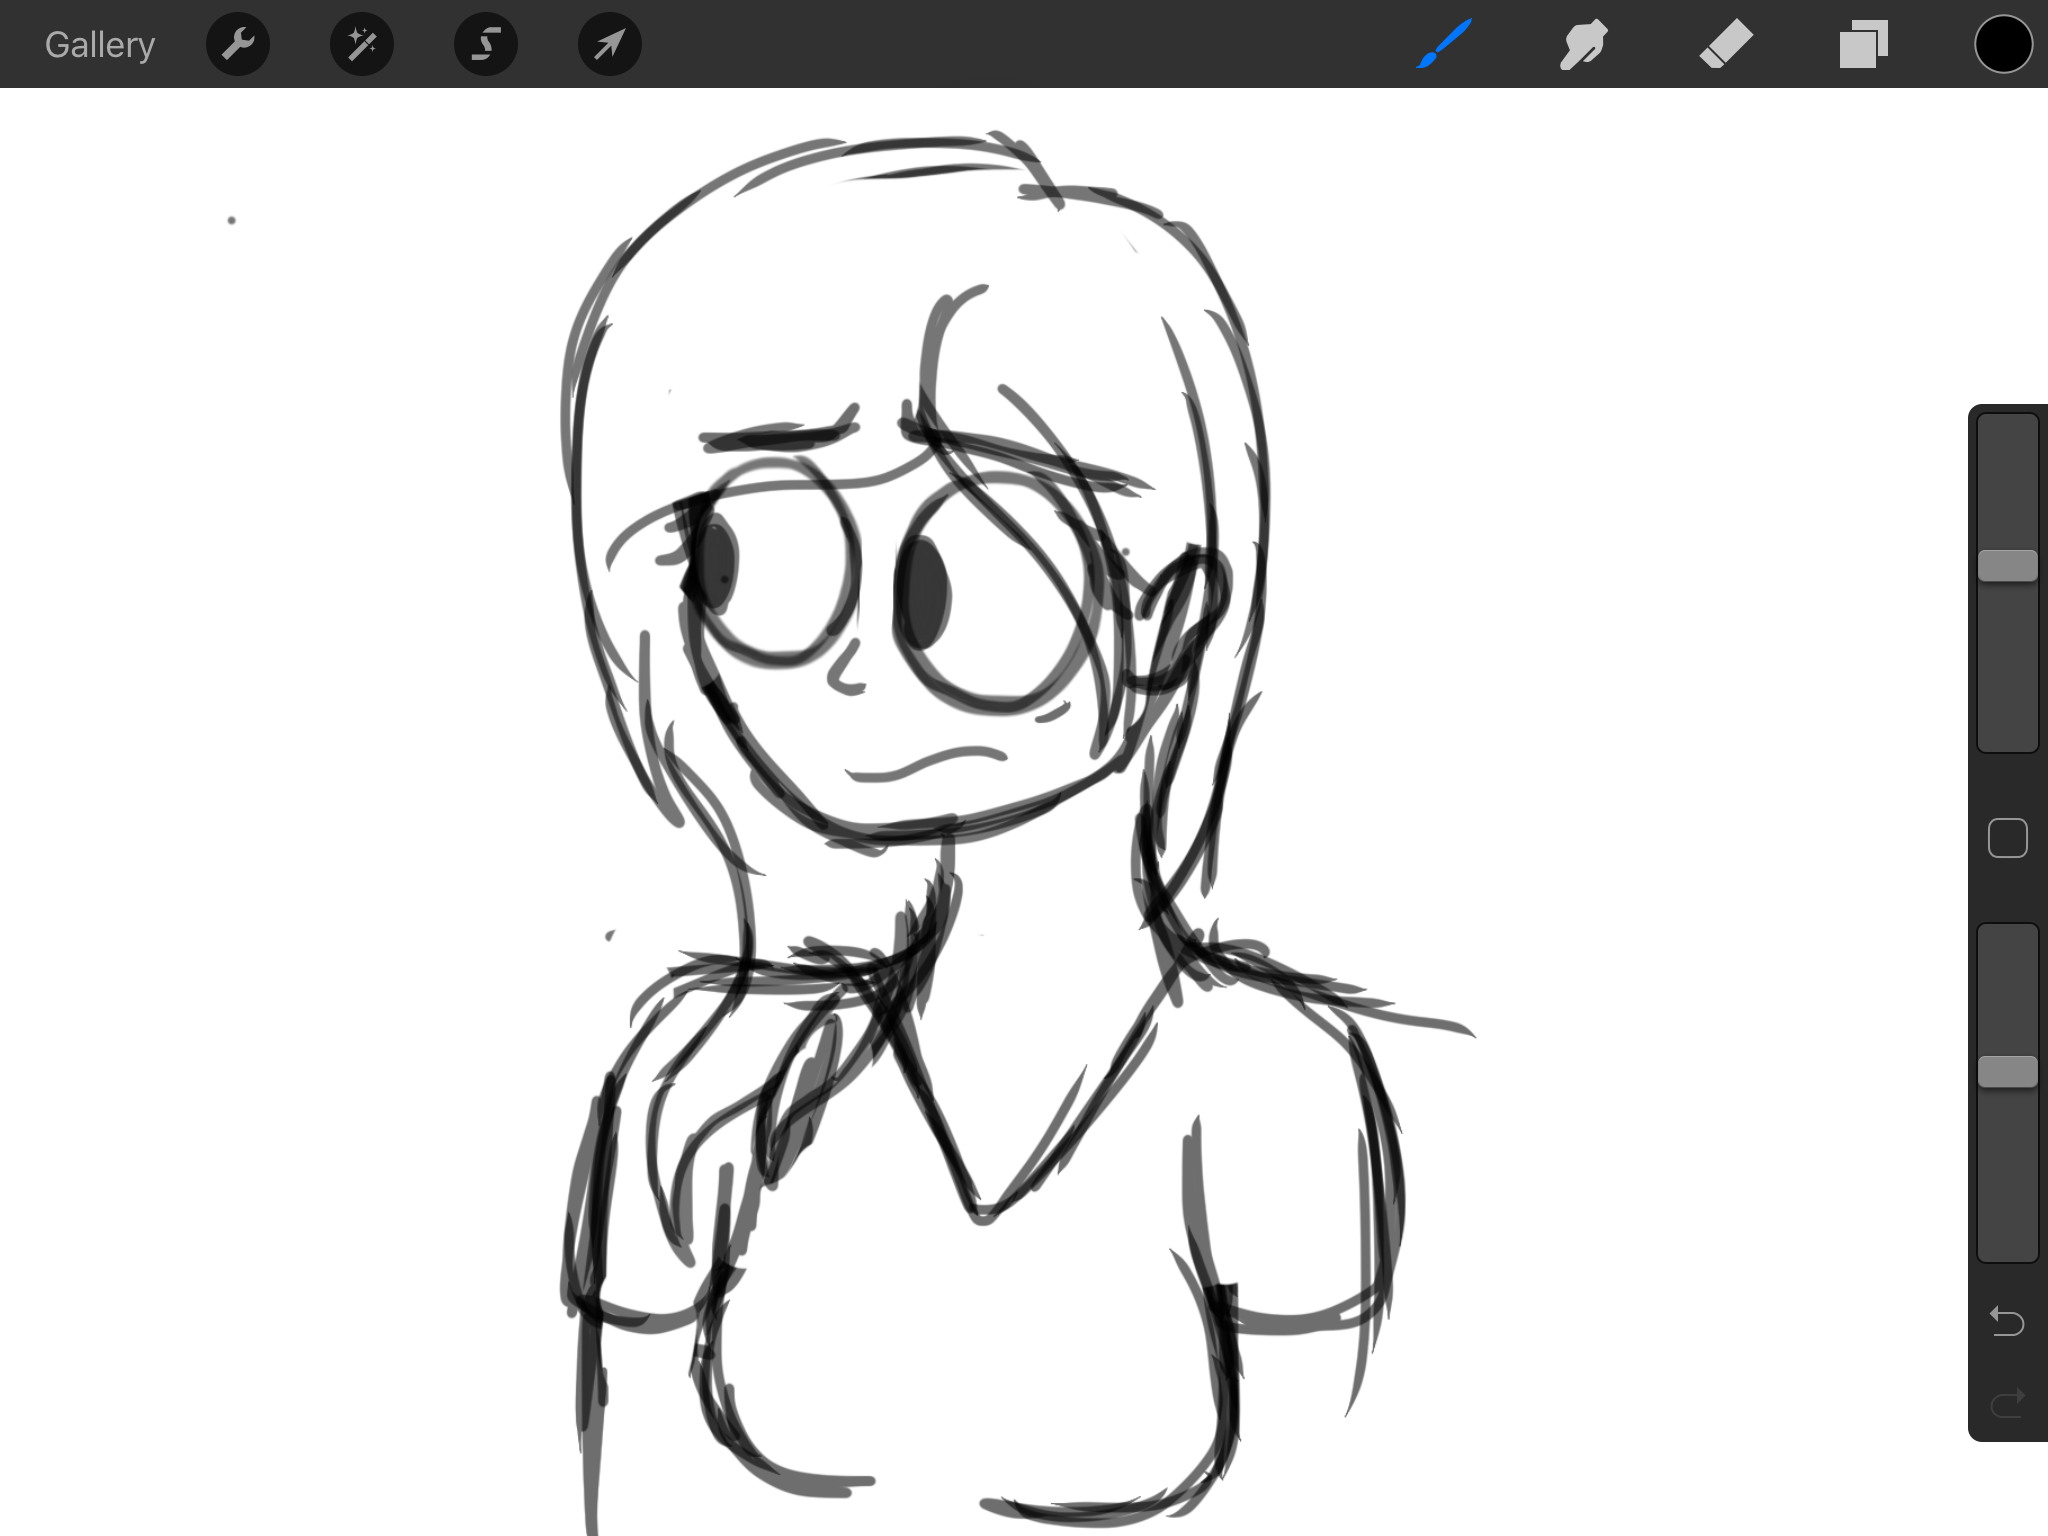 Sorry this isn't ponies but I'm developing a style for an animation, tbh this is the style I've always wanted. What do y'all think so far???